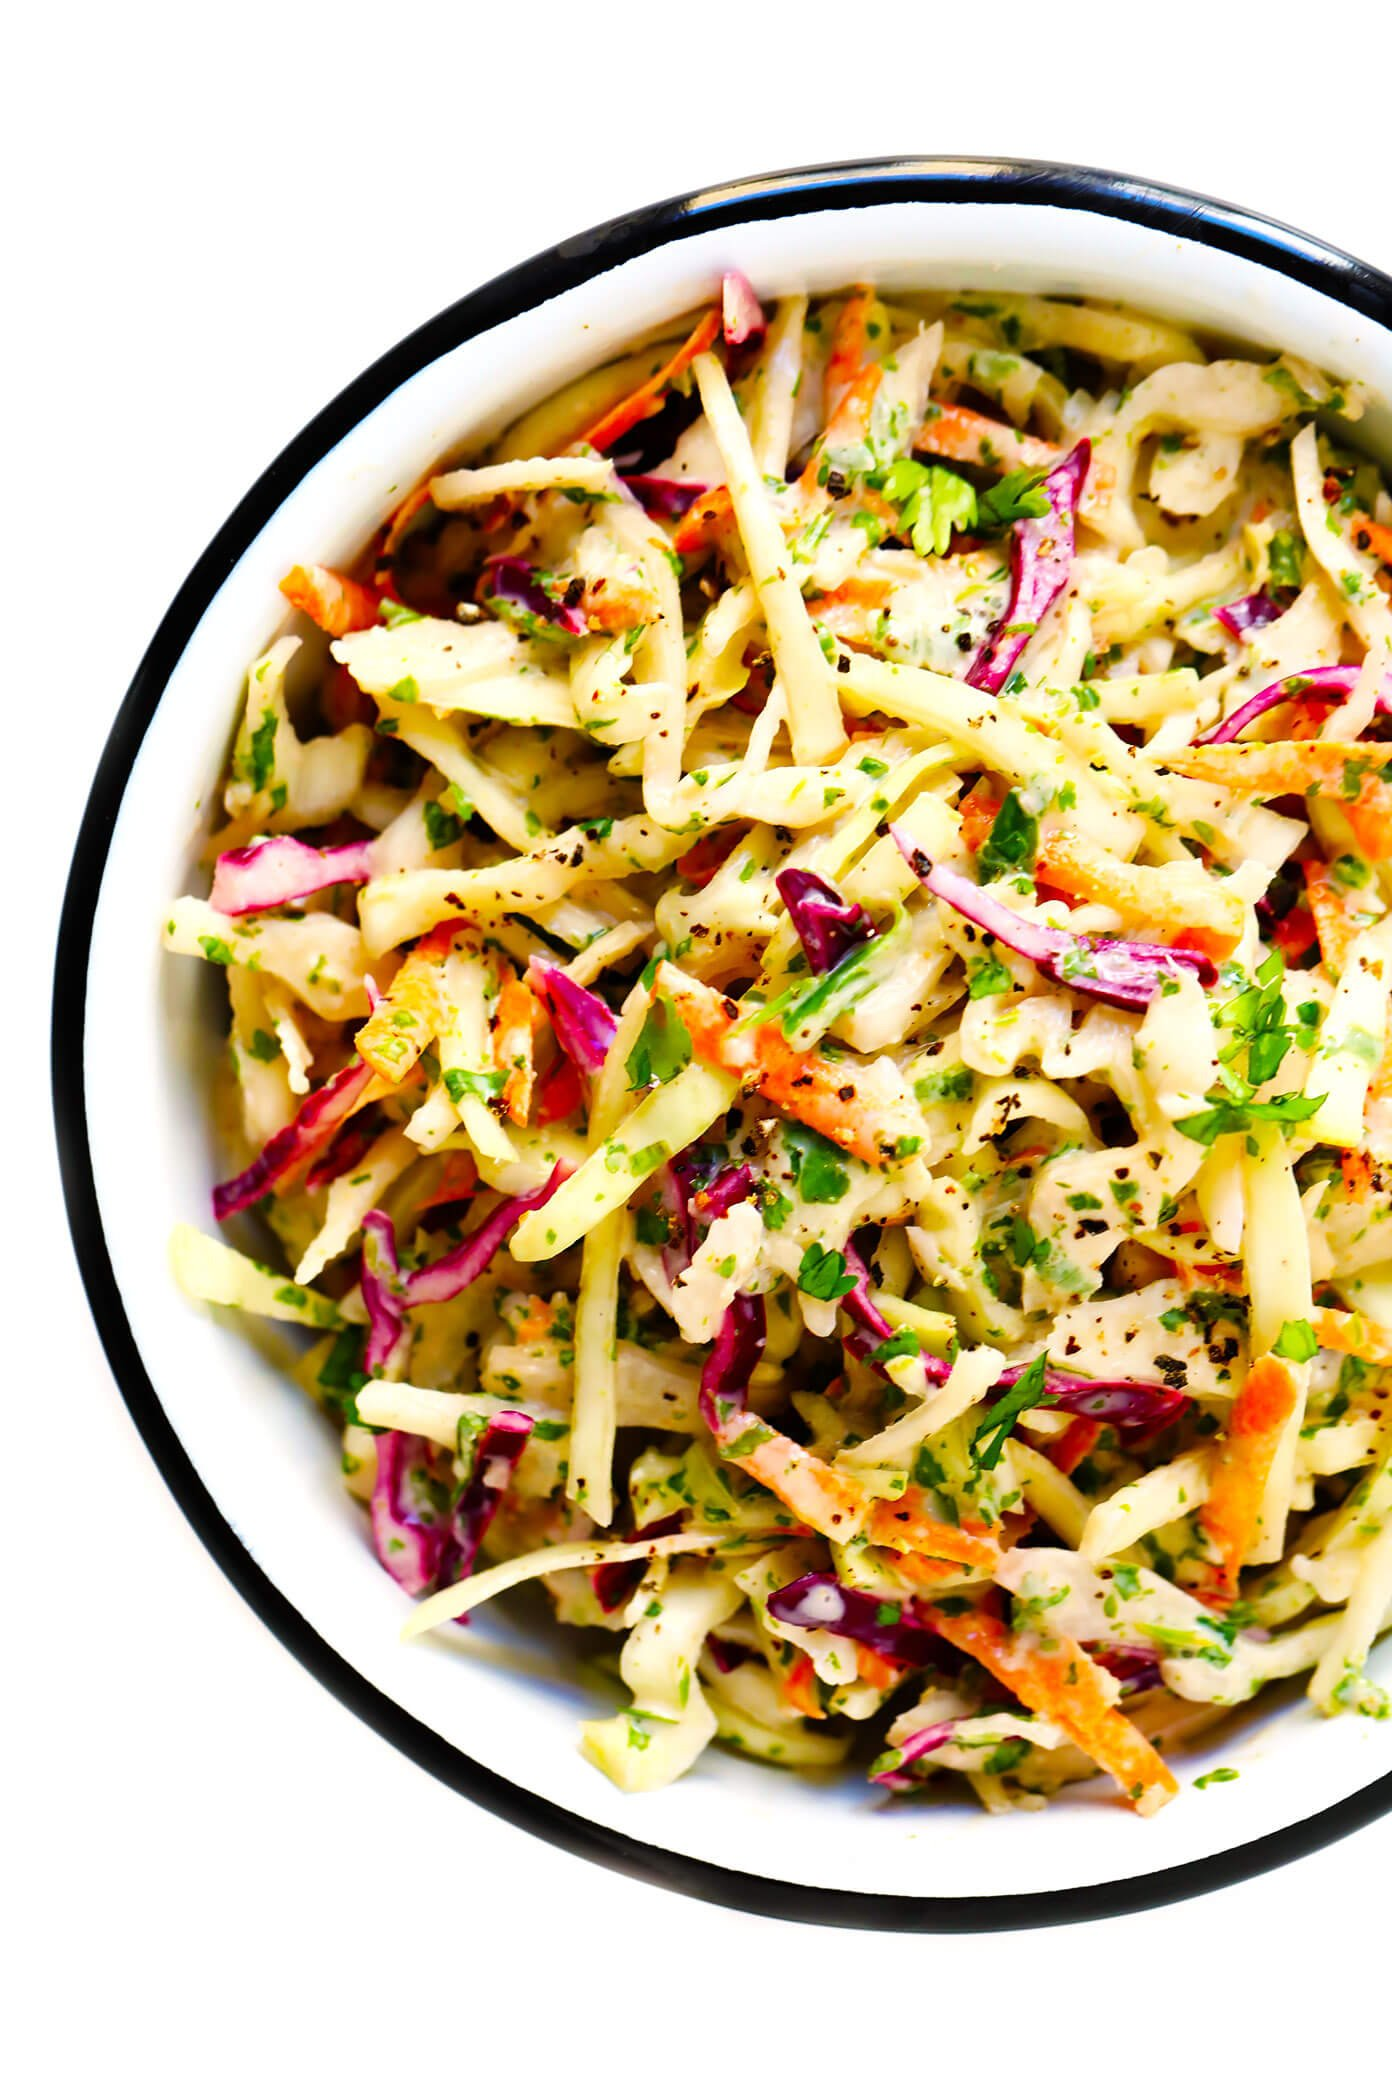 Healthy Coleslaw Recipe with Cilantro and Lime